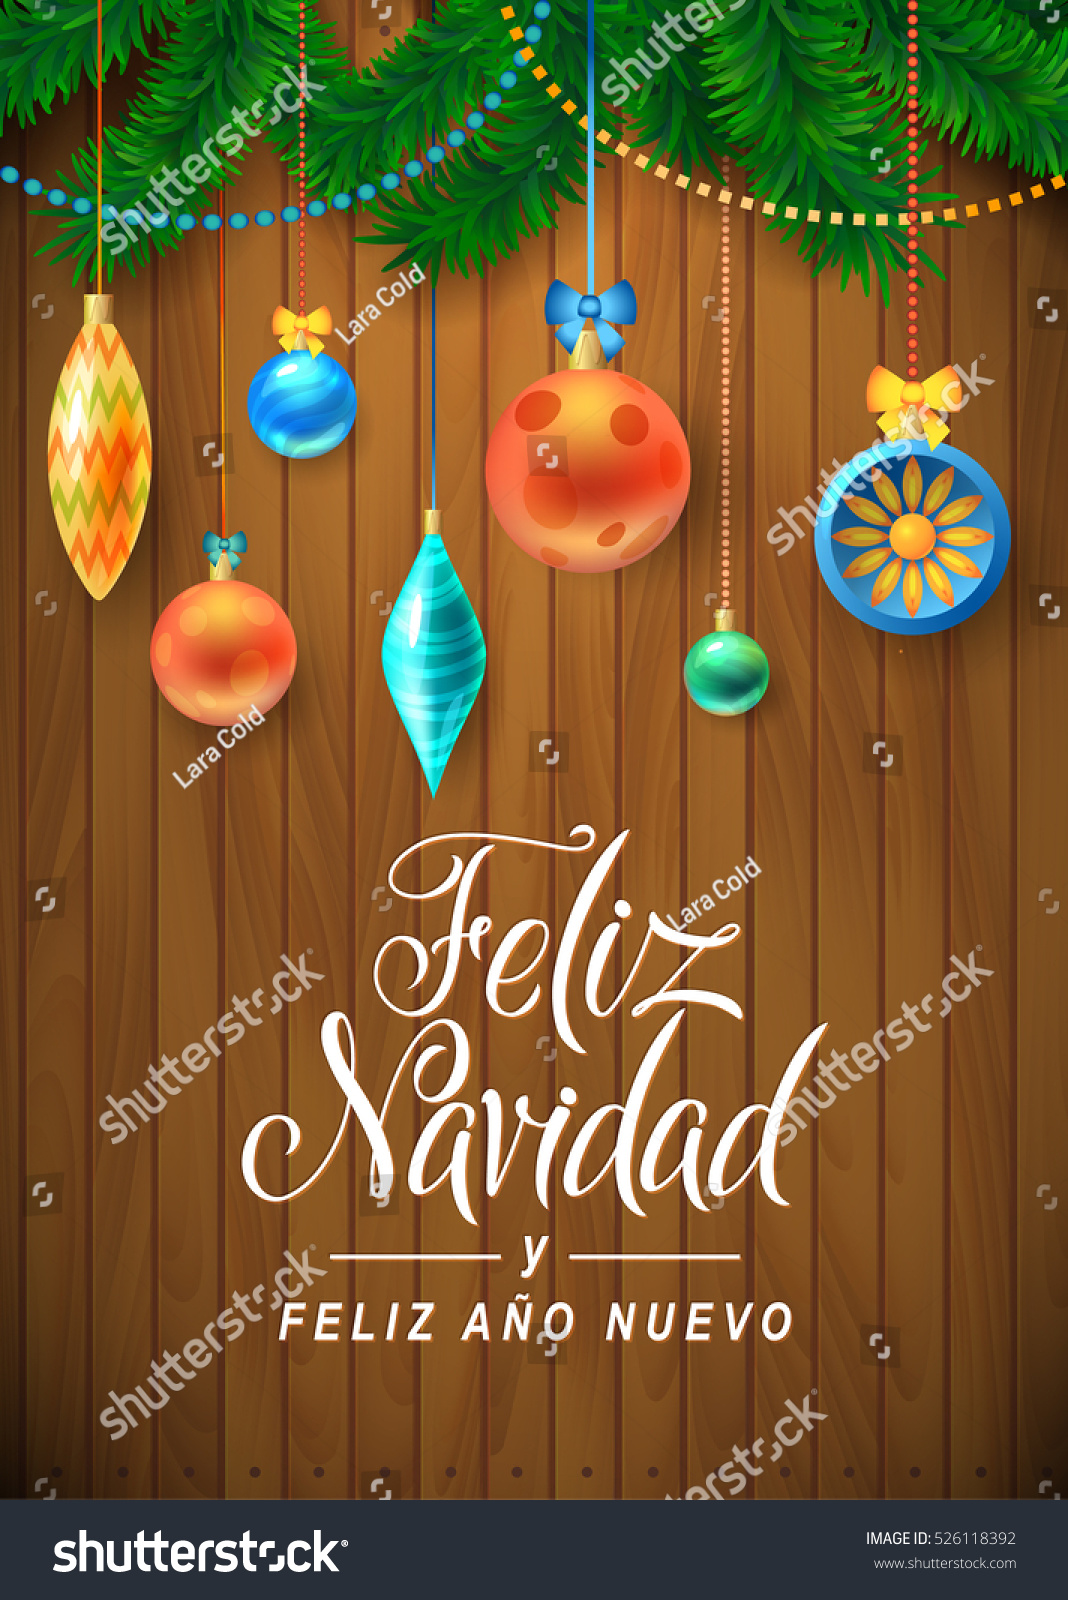 merry christmas and happy new year spanish language christmas fir tree with decoration on